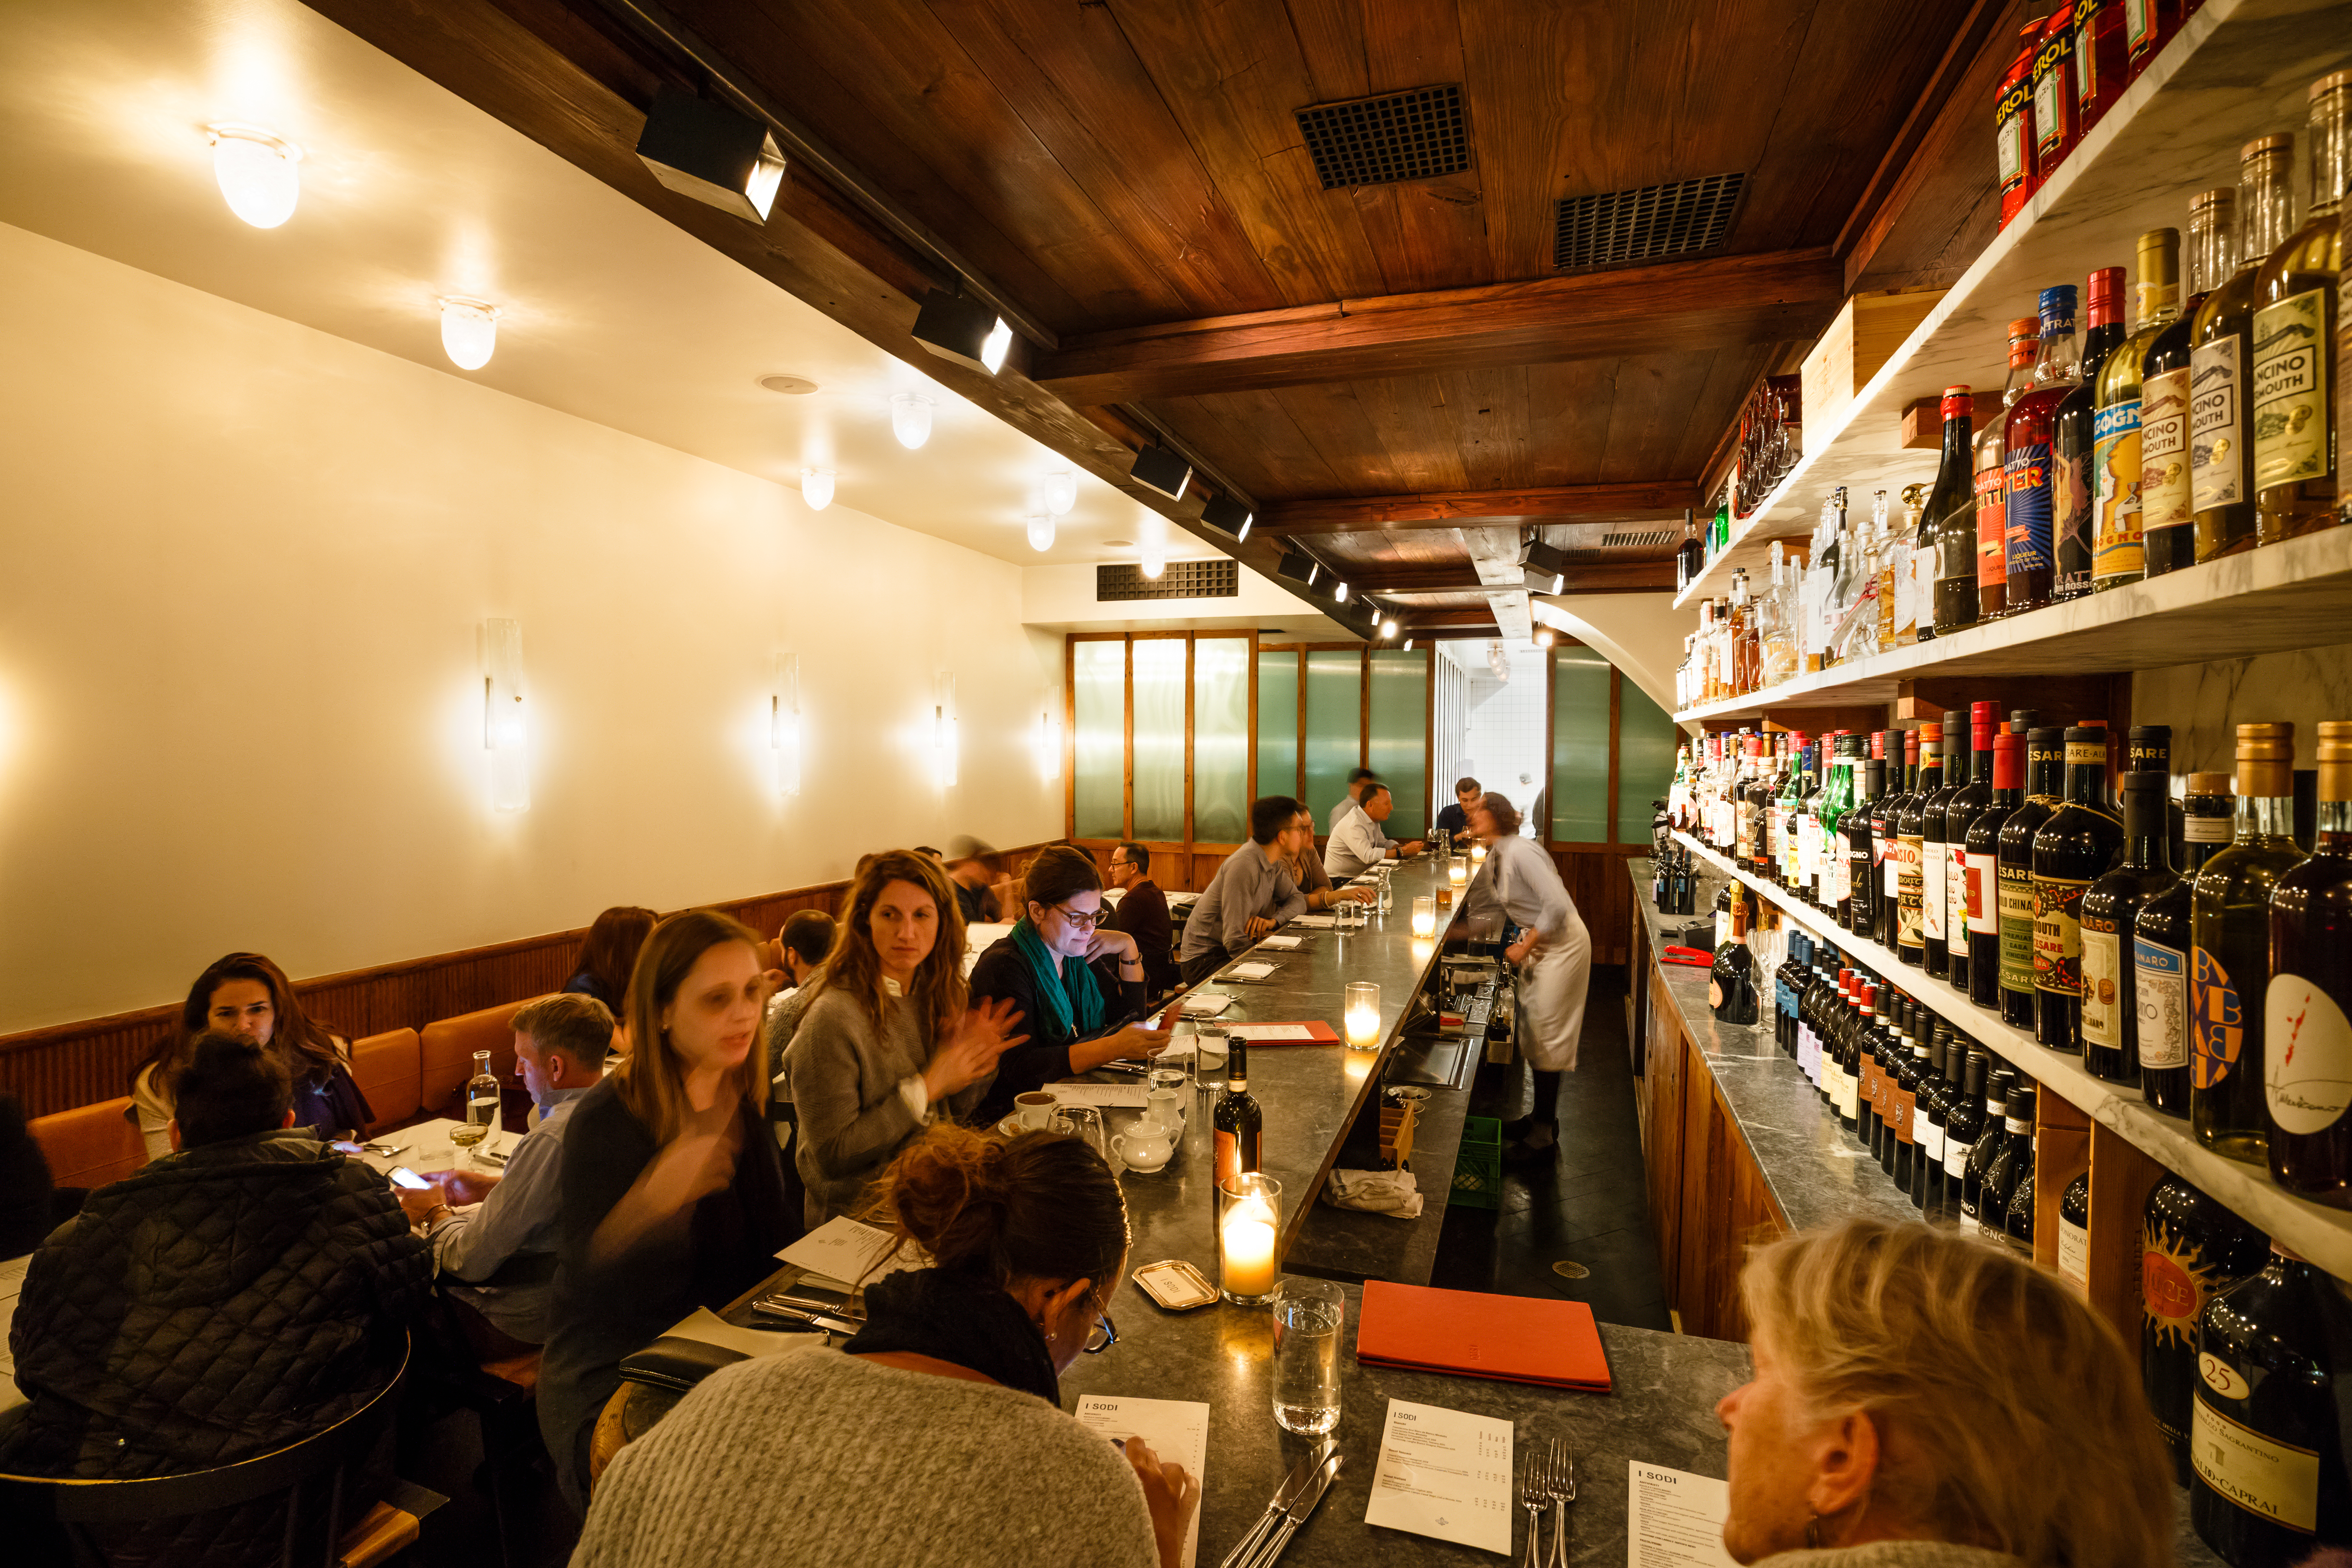 Customers dine at a busy I Sodi, with one wall lined with wine bottles